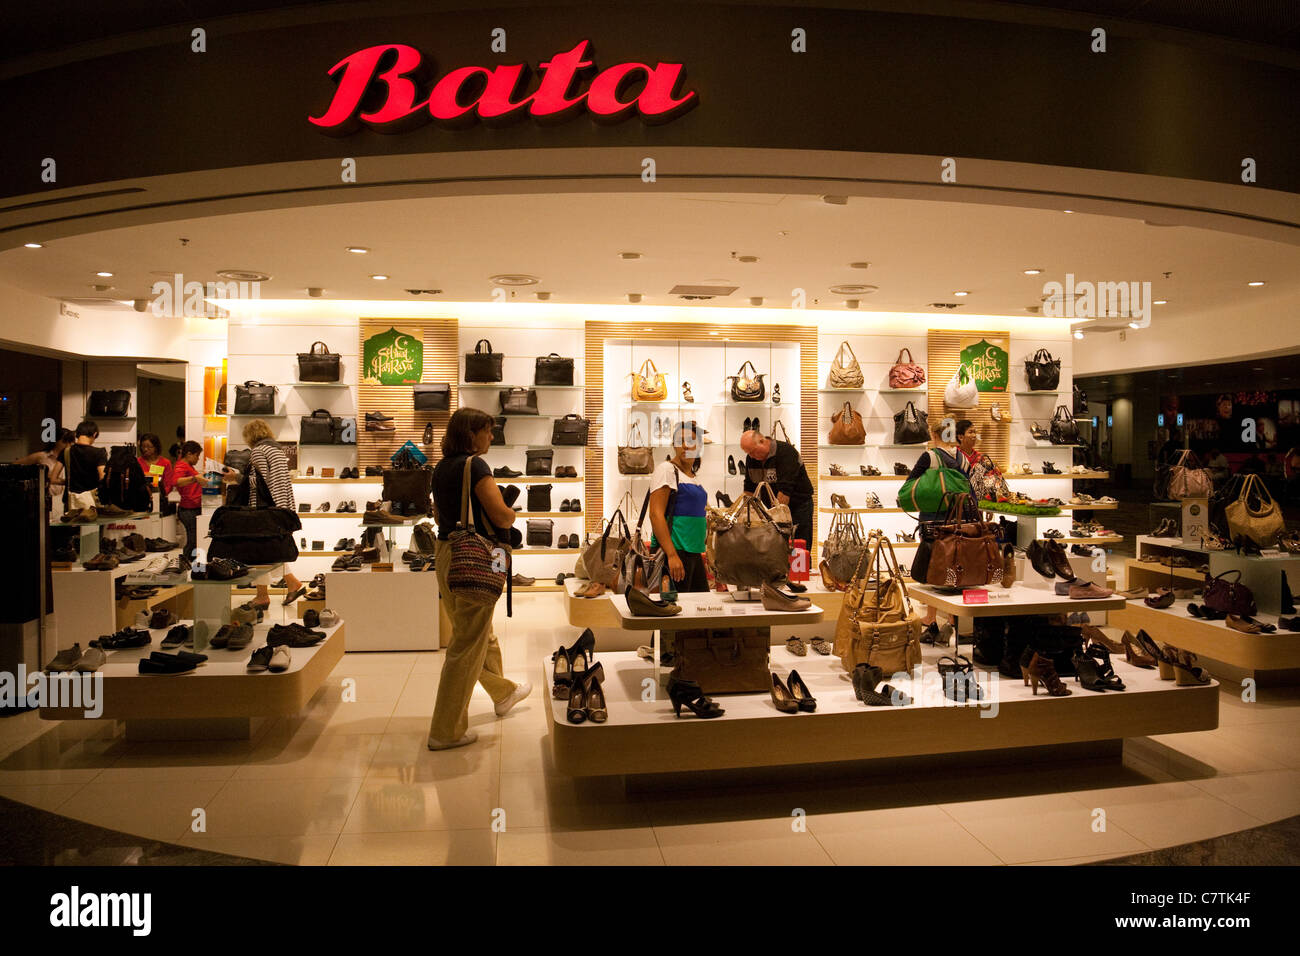 6791036fee6b Bata shoes and leather goods store, Changi airport, Singapore - Stock Image